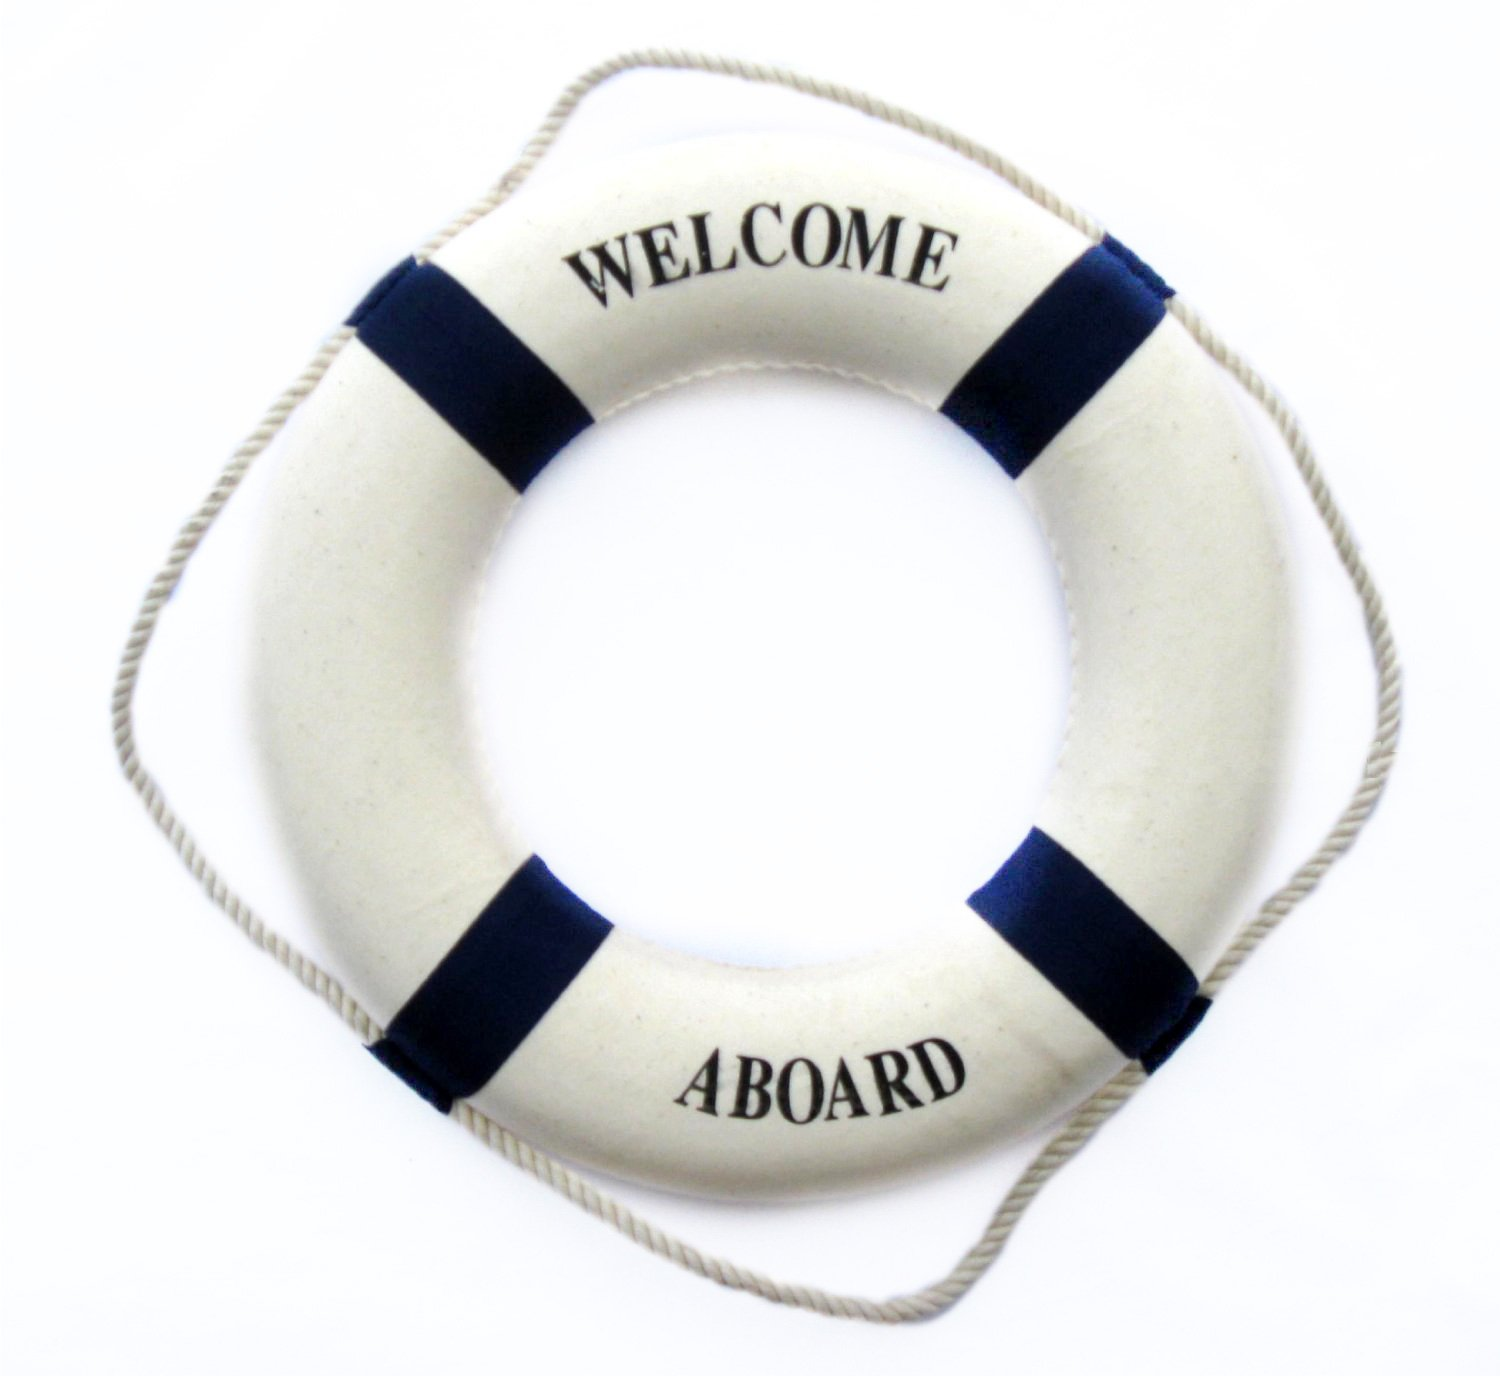 Welcome aboard boat ships life ring clock - Tojoy Nautical Decor Decorative Life Ring 13 5 Inch Lifering Blue